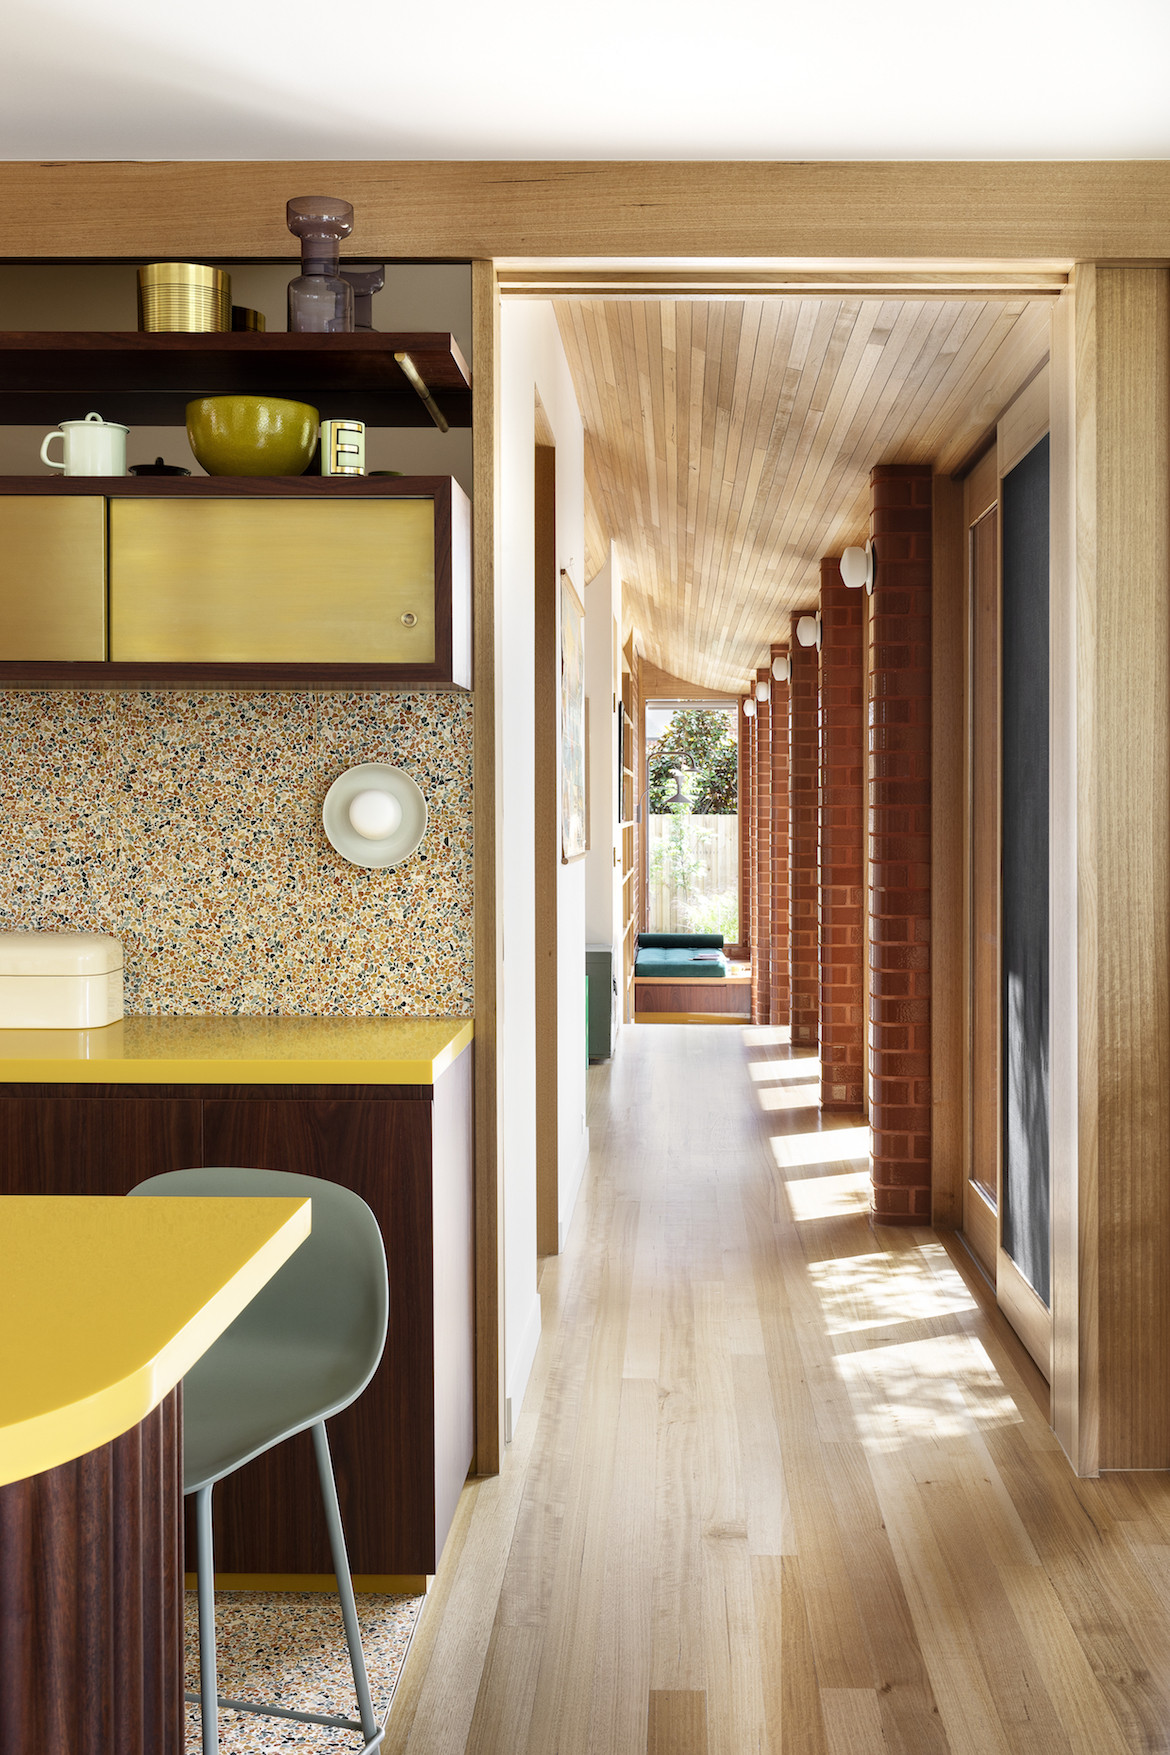 A view down the hallway with a slanted wooden roof and the edge of the kitchen's yellow bench and colourful terrazzo.